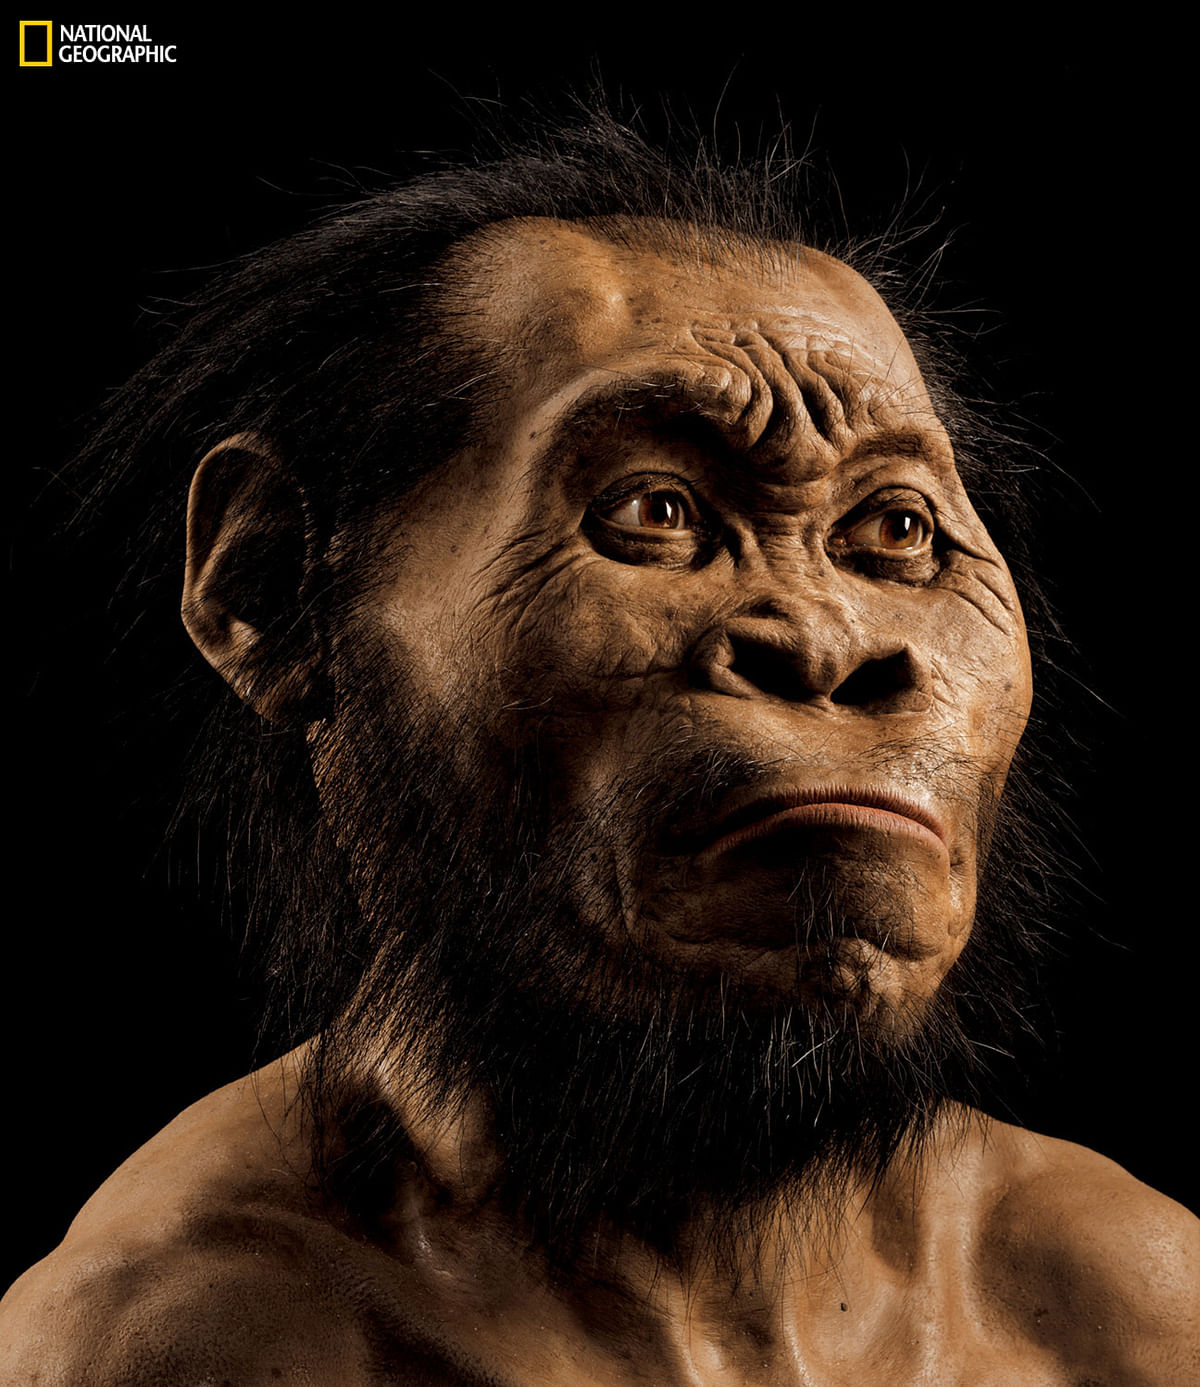 A reconstruction of Homo naledi  by paleoartist John Gurche at his studio in Trumansburg, N.Y. (Photo: (Mark Thiessen/National Geographic via AP)